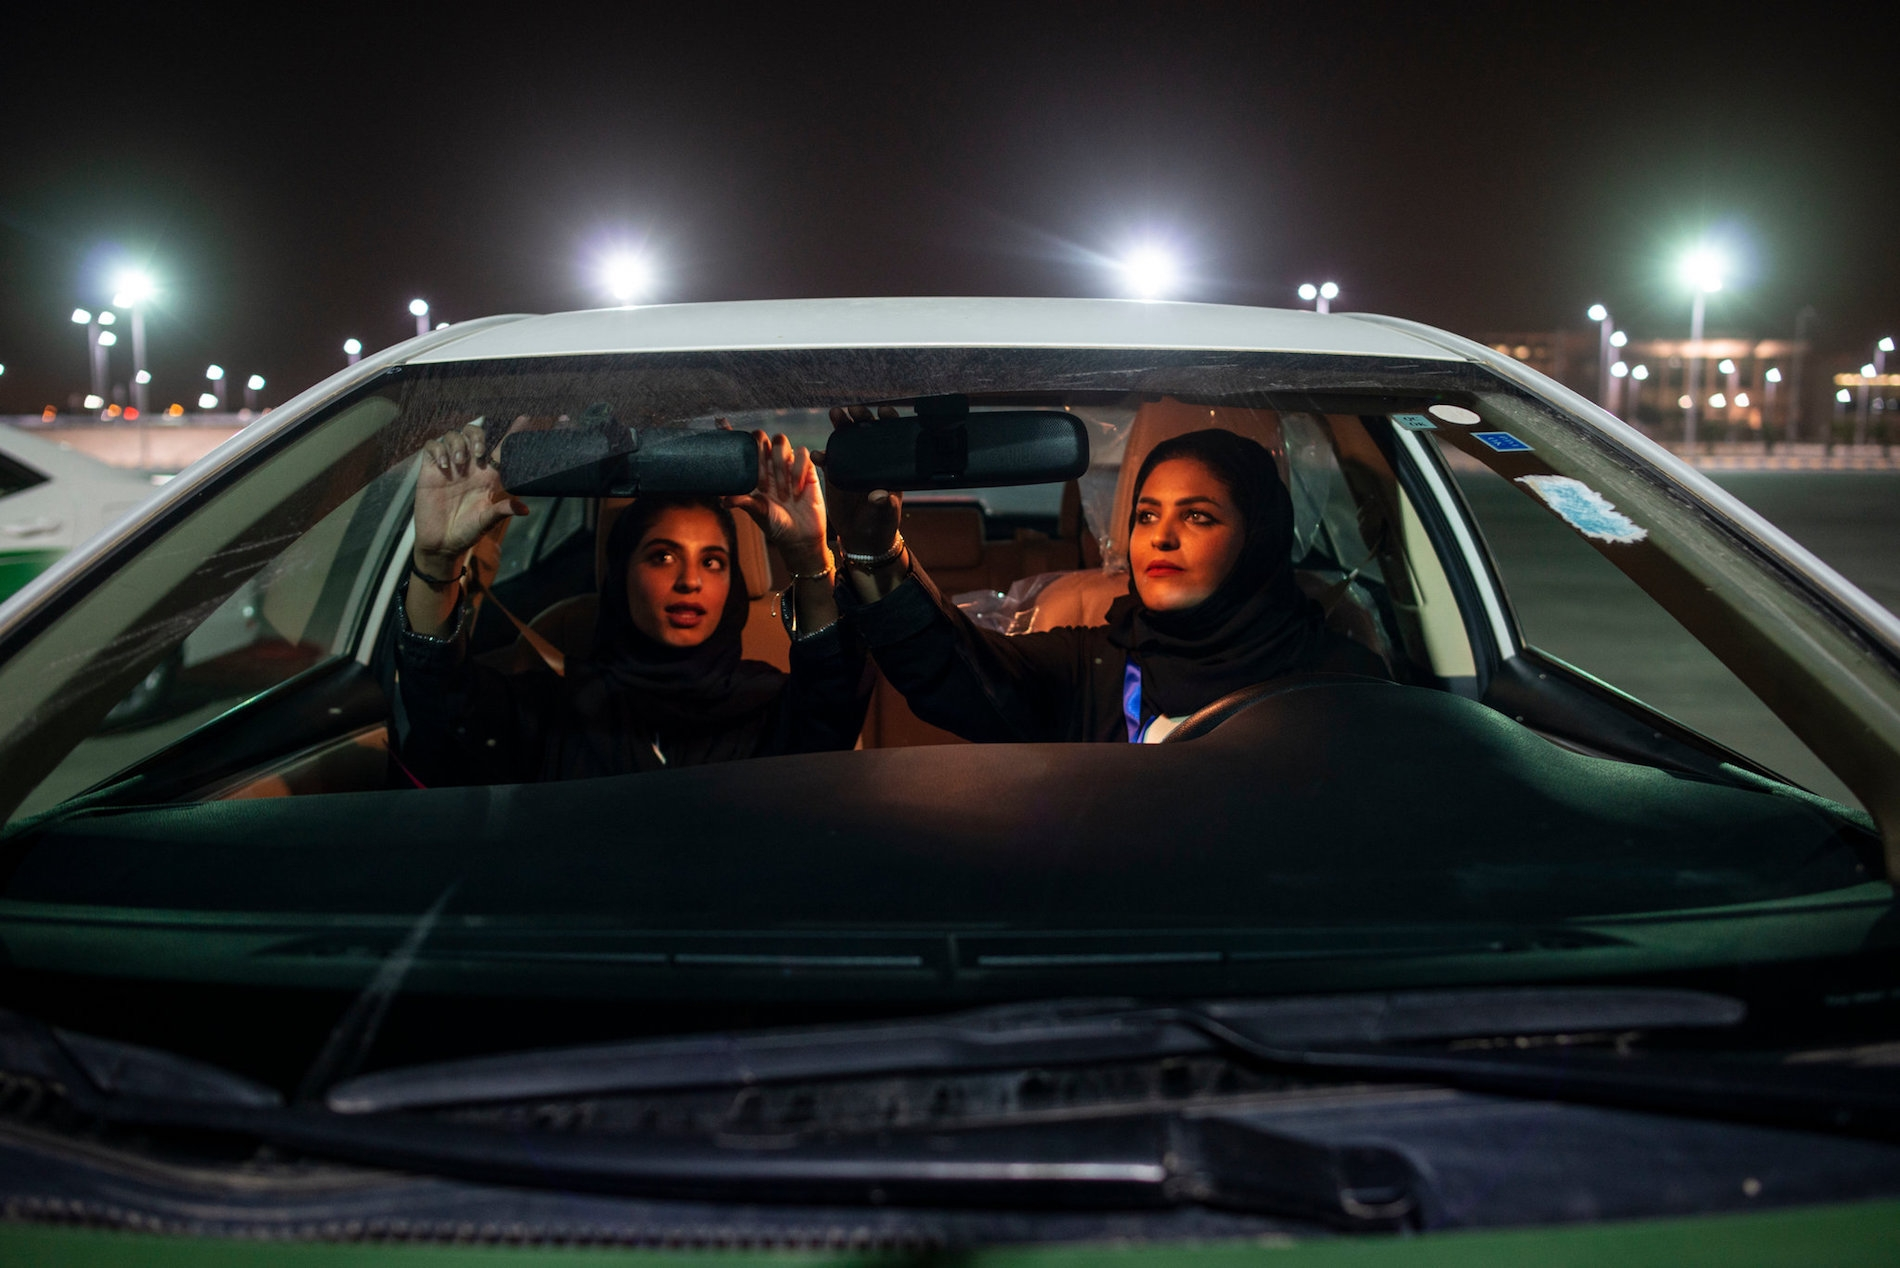 Photo through the front windshield of a car as two Saudi women adjust the mirrors